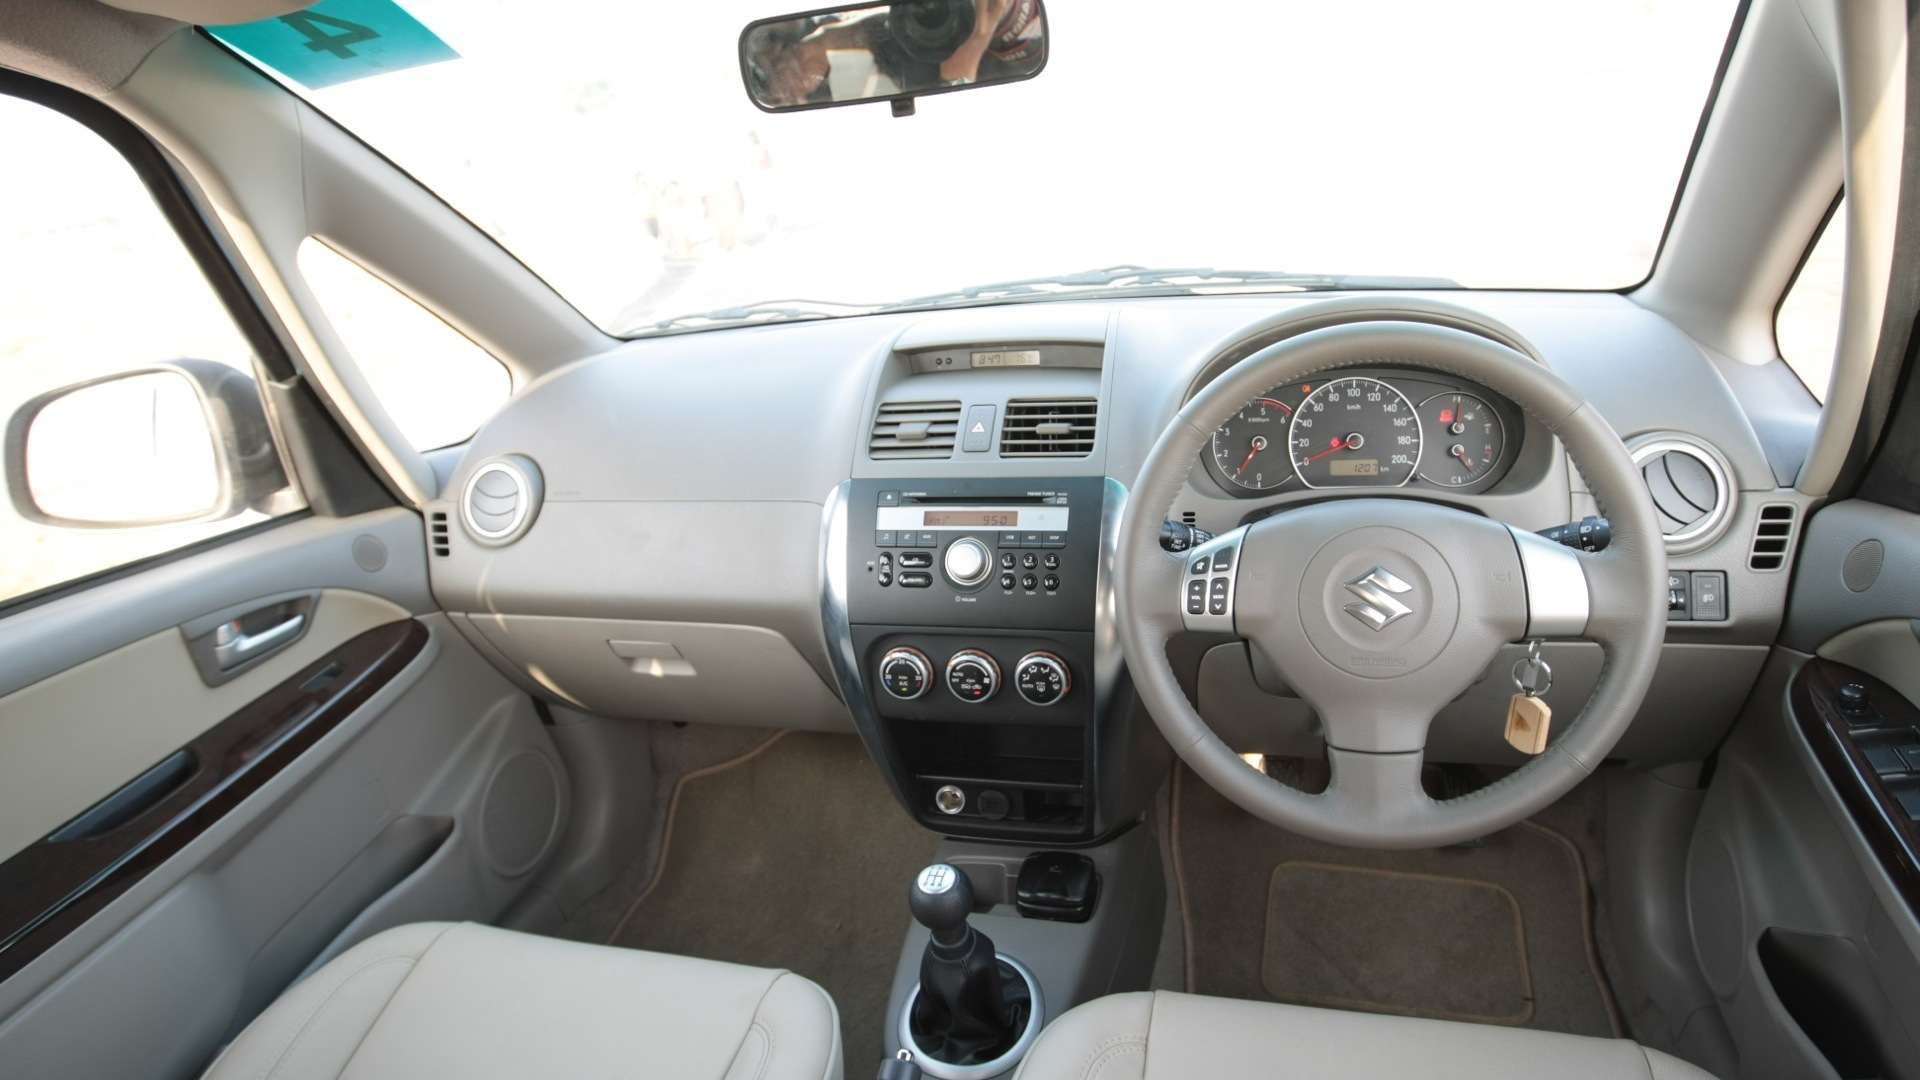 honda brio interior with Maruti Suzuki Sx4 2013 Zdi Interior 172 on Honda Brv Suv Interior also C3V2LWNvbXBhcmlzb24tY2hhcnQtdWs together with All New Tata Tiago Launched In India Priced From Rs 3 20 Lakhs 401204 as well Suv Cars In India Zigwheels additionally Brio Satya.